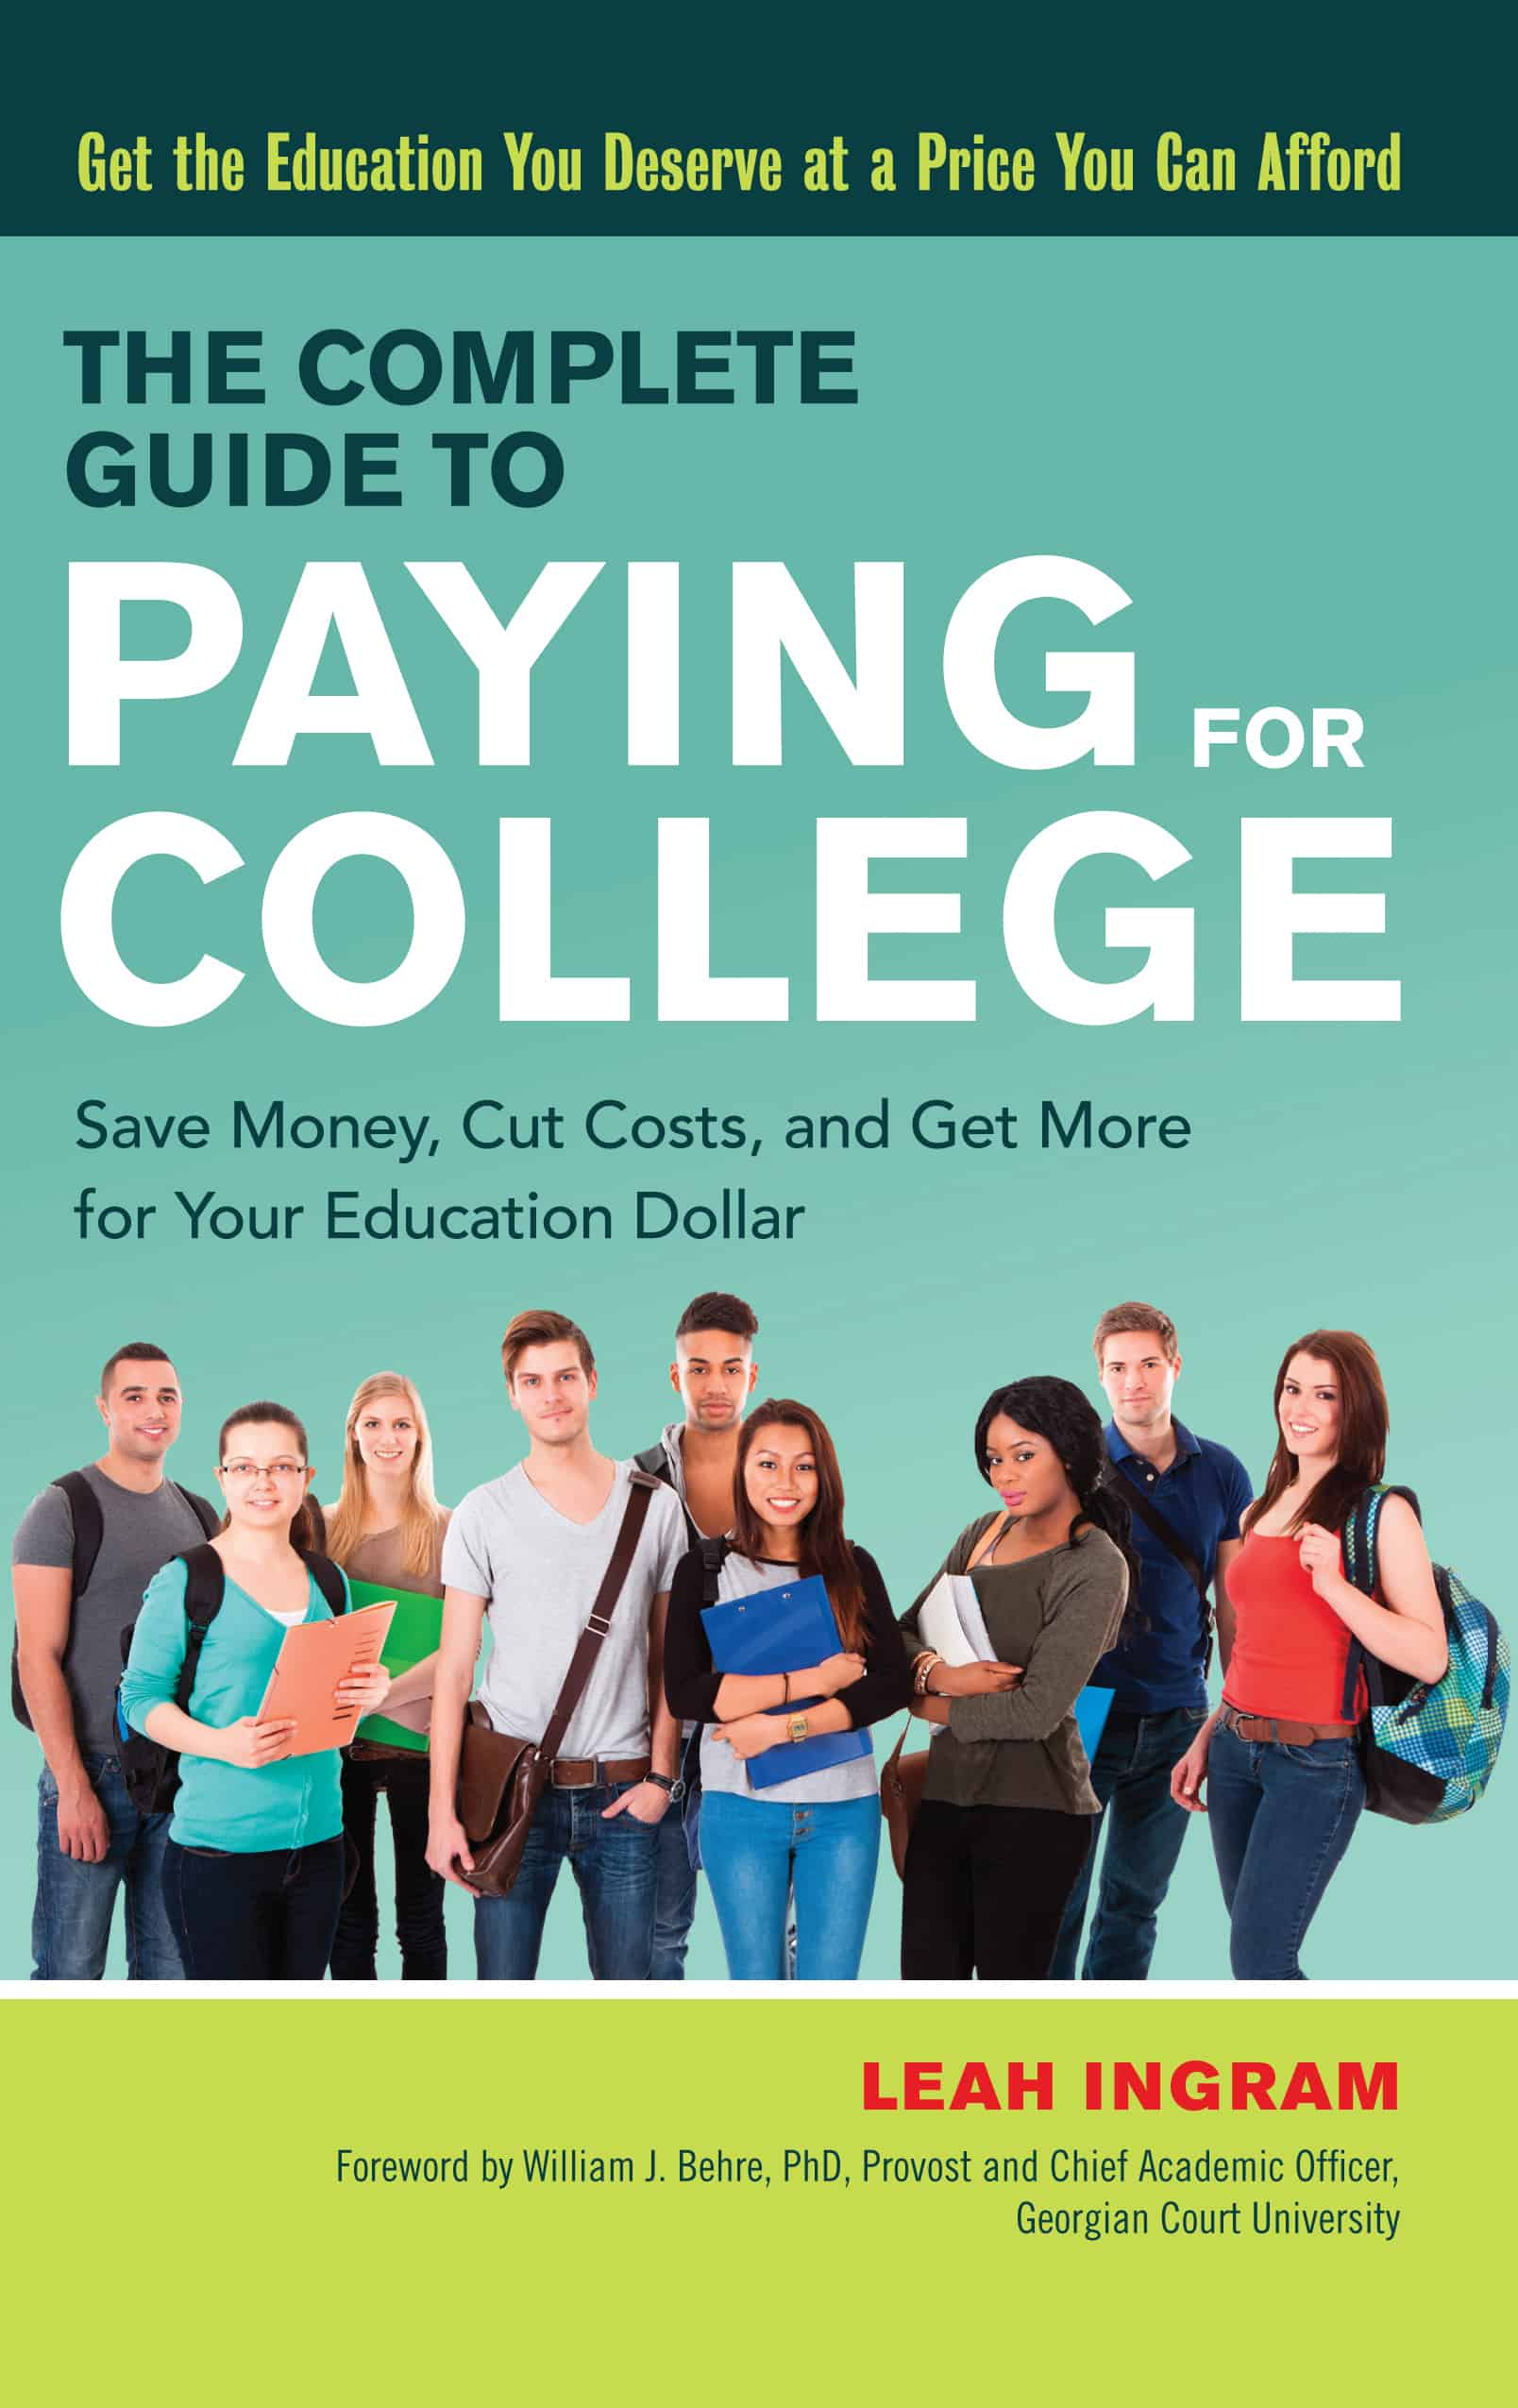 Learn how to get the education you deserve at a price you can afford!